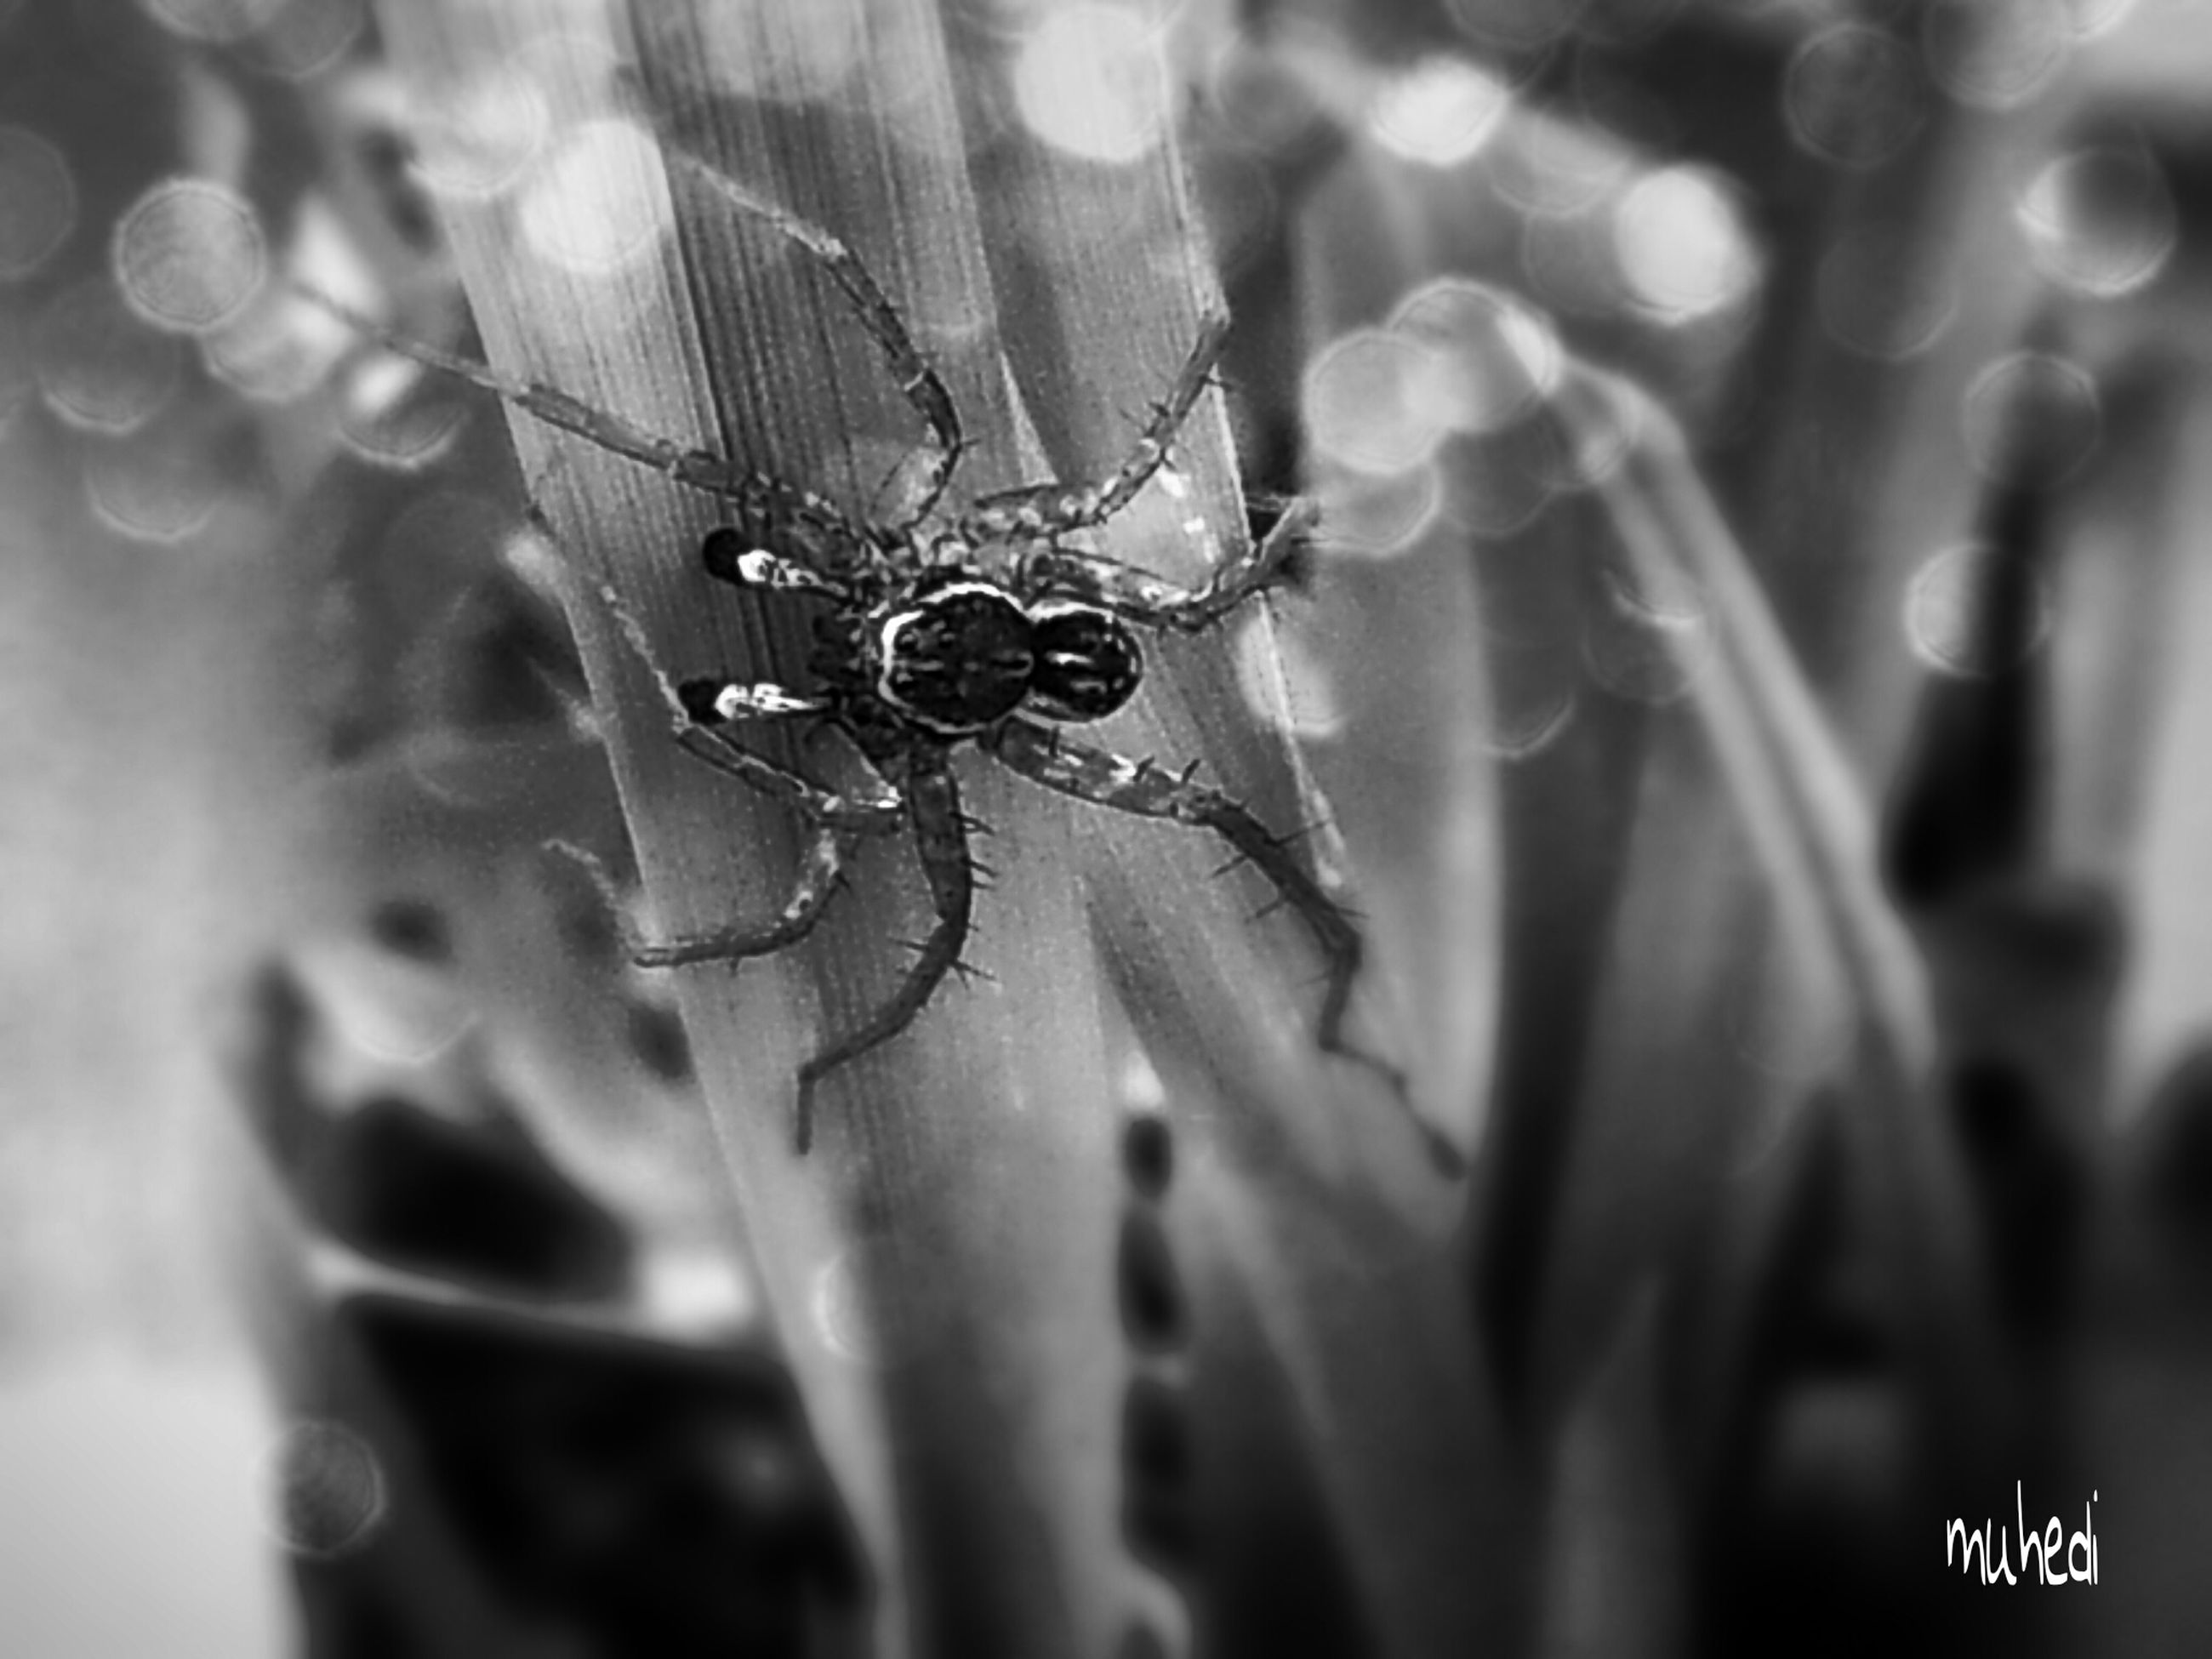 one animal, insect, close-up, animal themes, focus on foreground, selective focus, spider web, wildlife, animals in the wild, nature, spider, fragility, macro, day, leaf, outdoors, extreme close-up, no people, plant, natural pattern